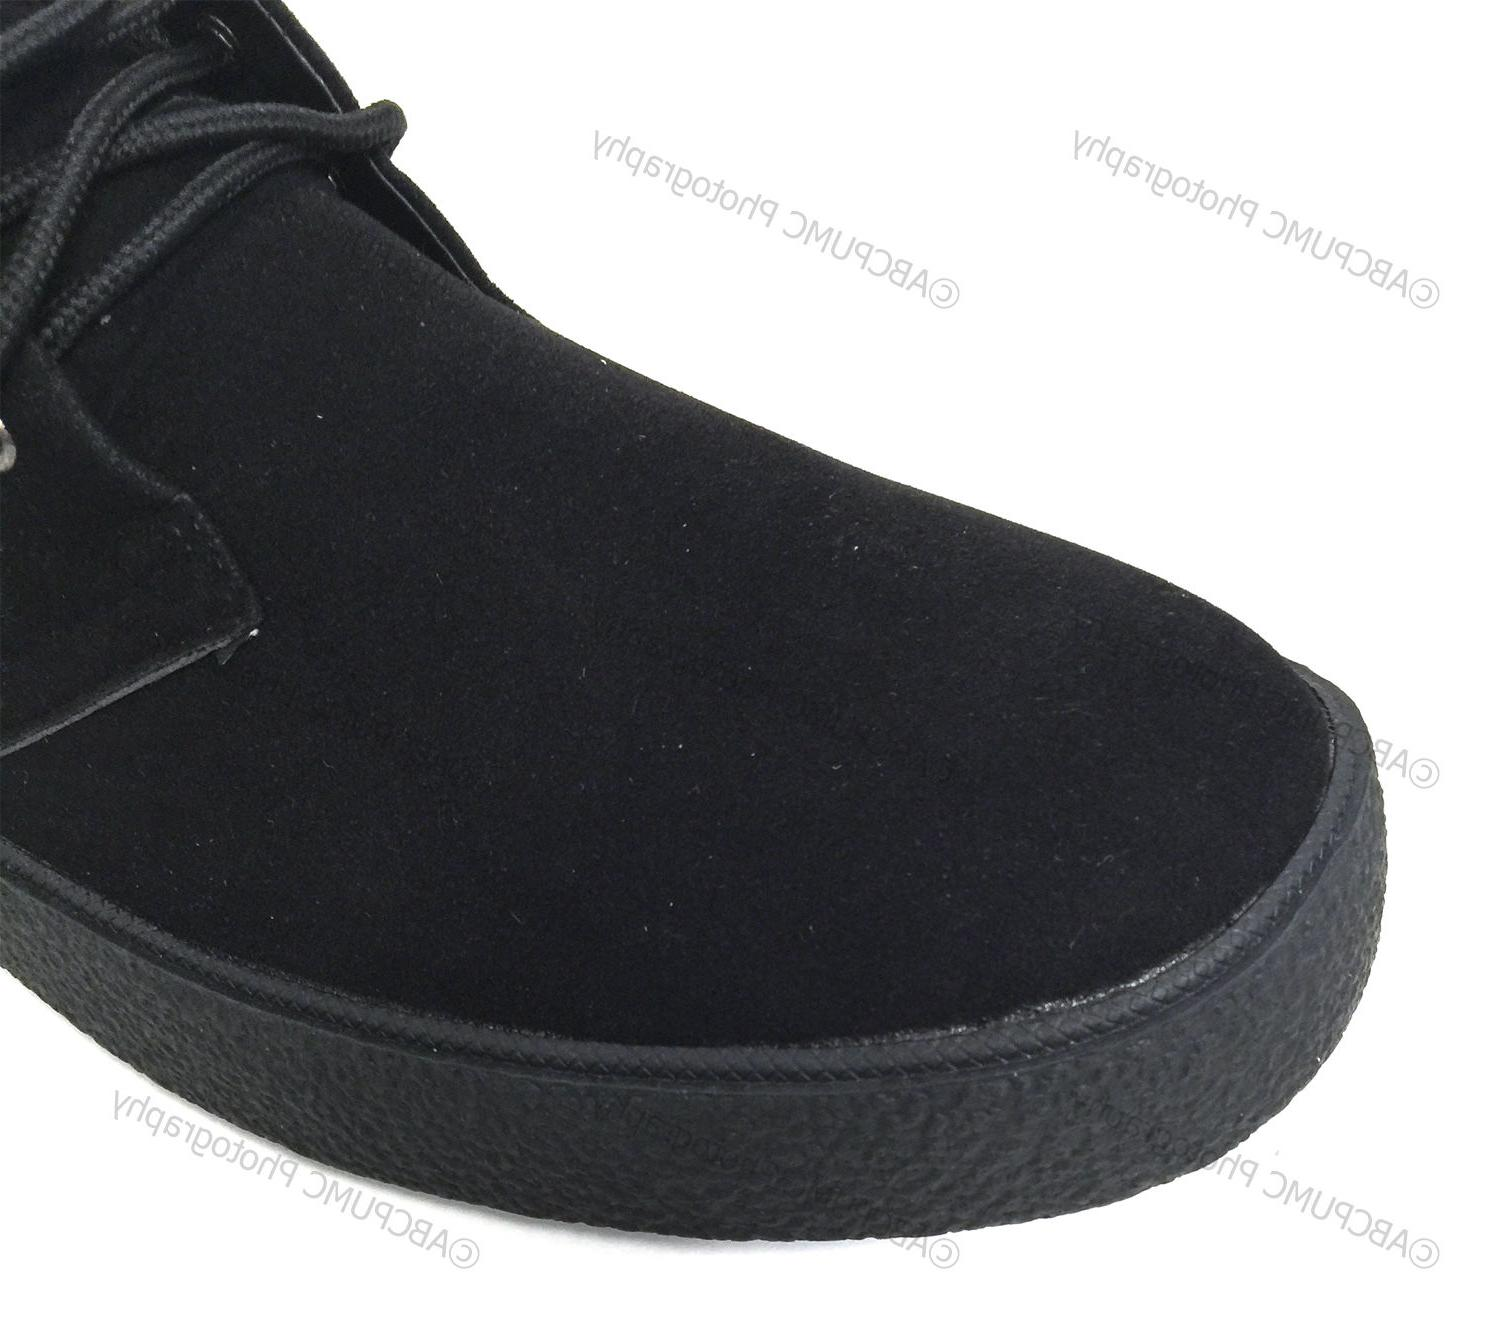 Mens Chukka Boots Wallace Lined Suede